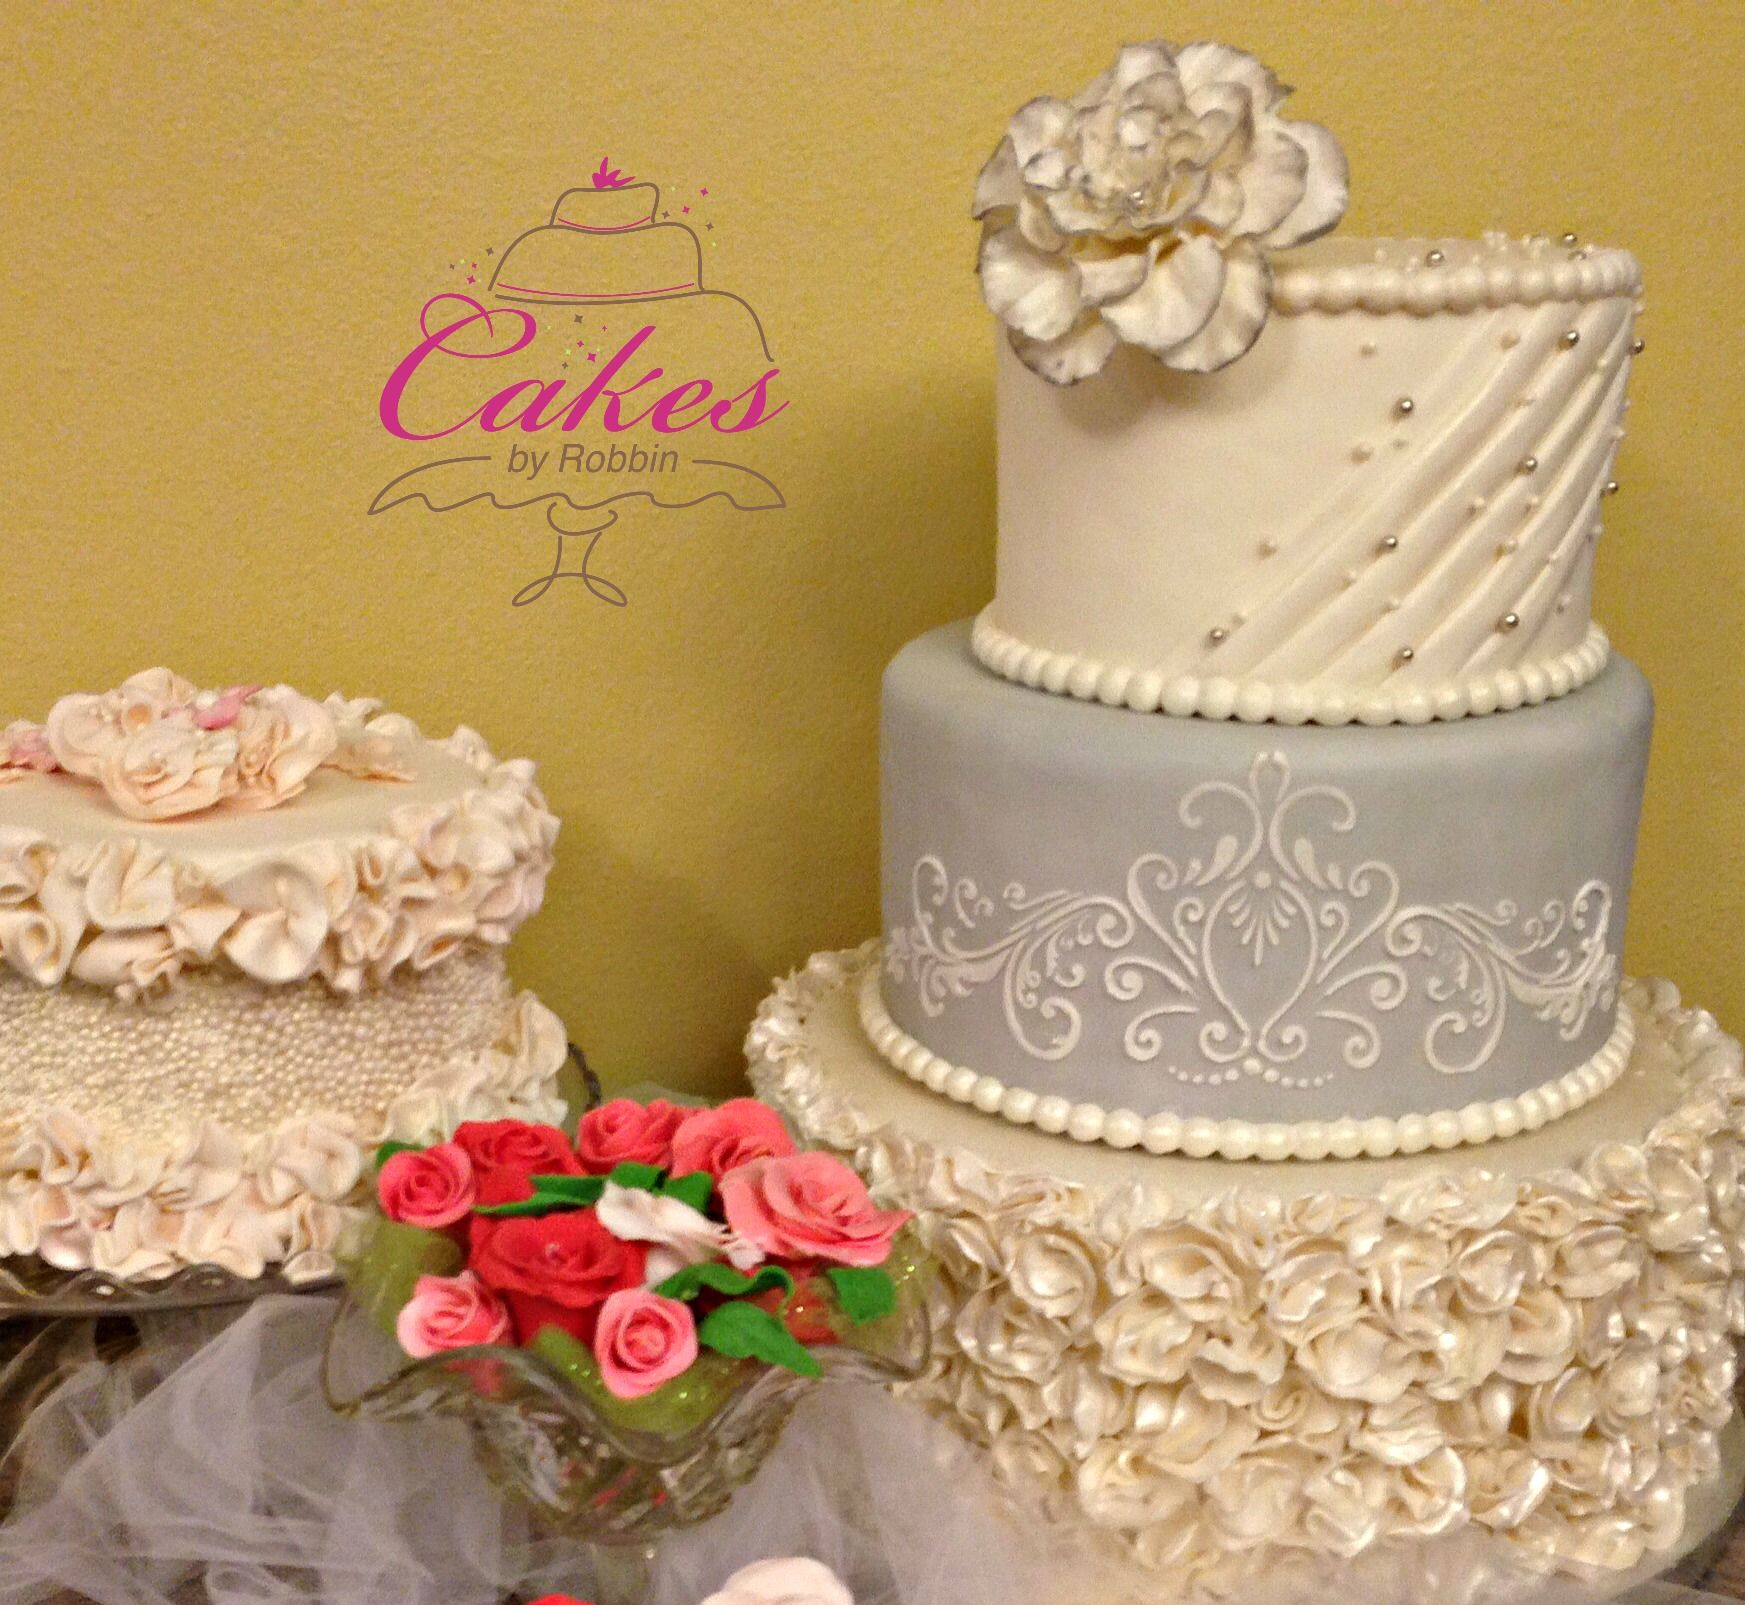 This is a classic grey and white wedding cake with ruffles ...